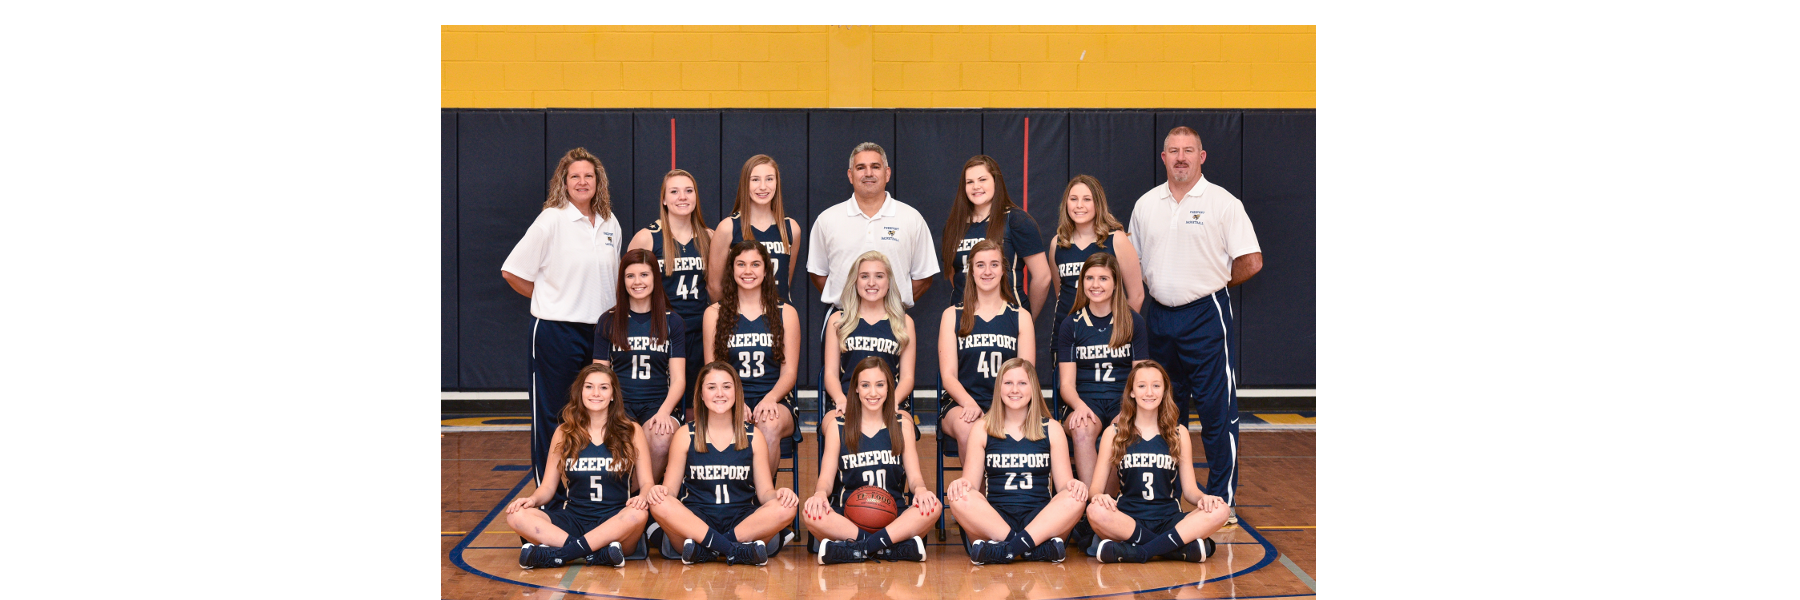 Girls Basketball Team 2018-2019